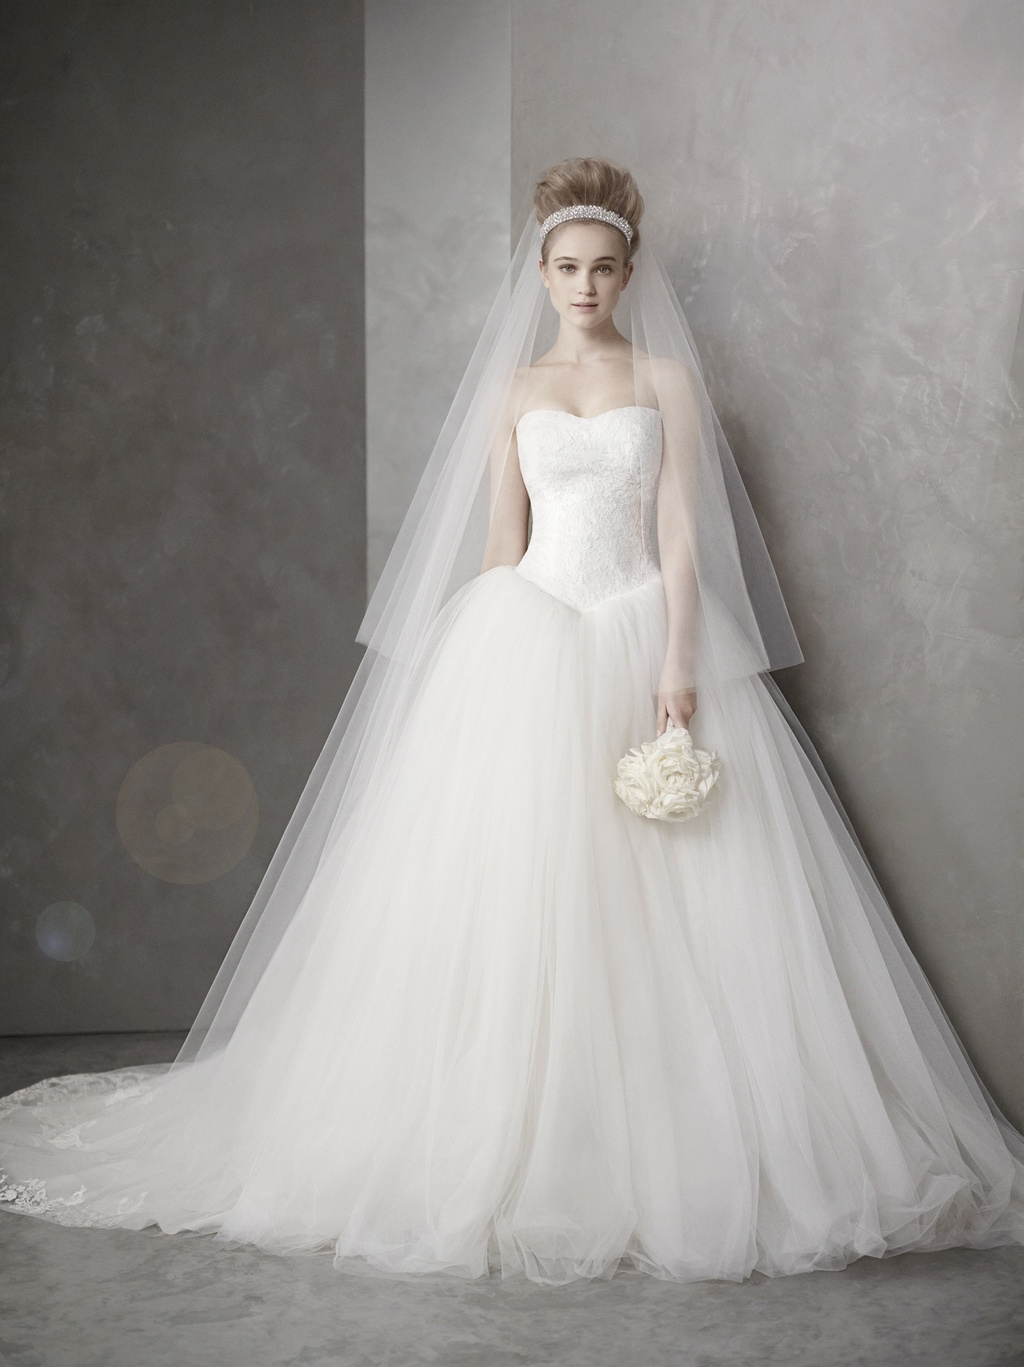 White-by-vera-wang-wedding-dresses-spring-2012-bridal-gown-fairytale-ballgown.full